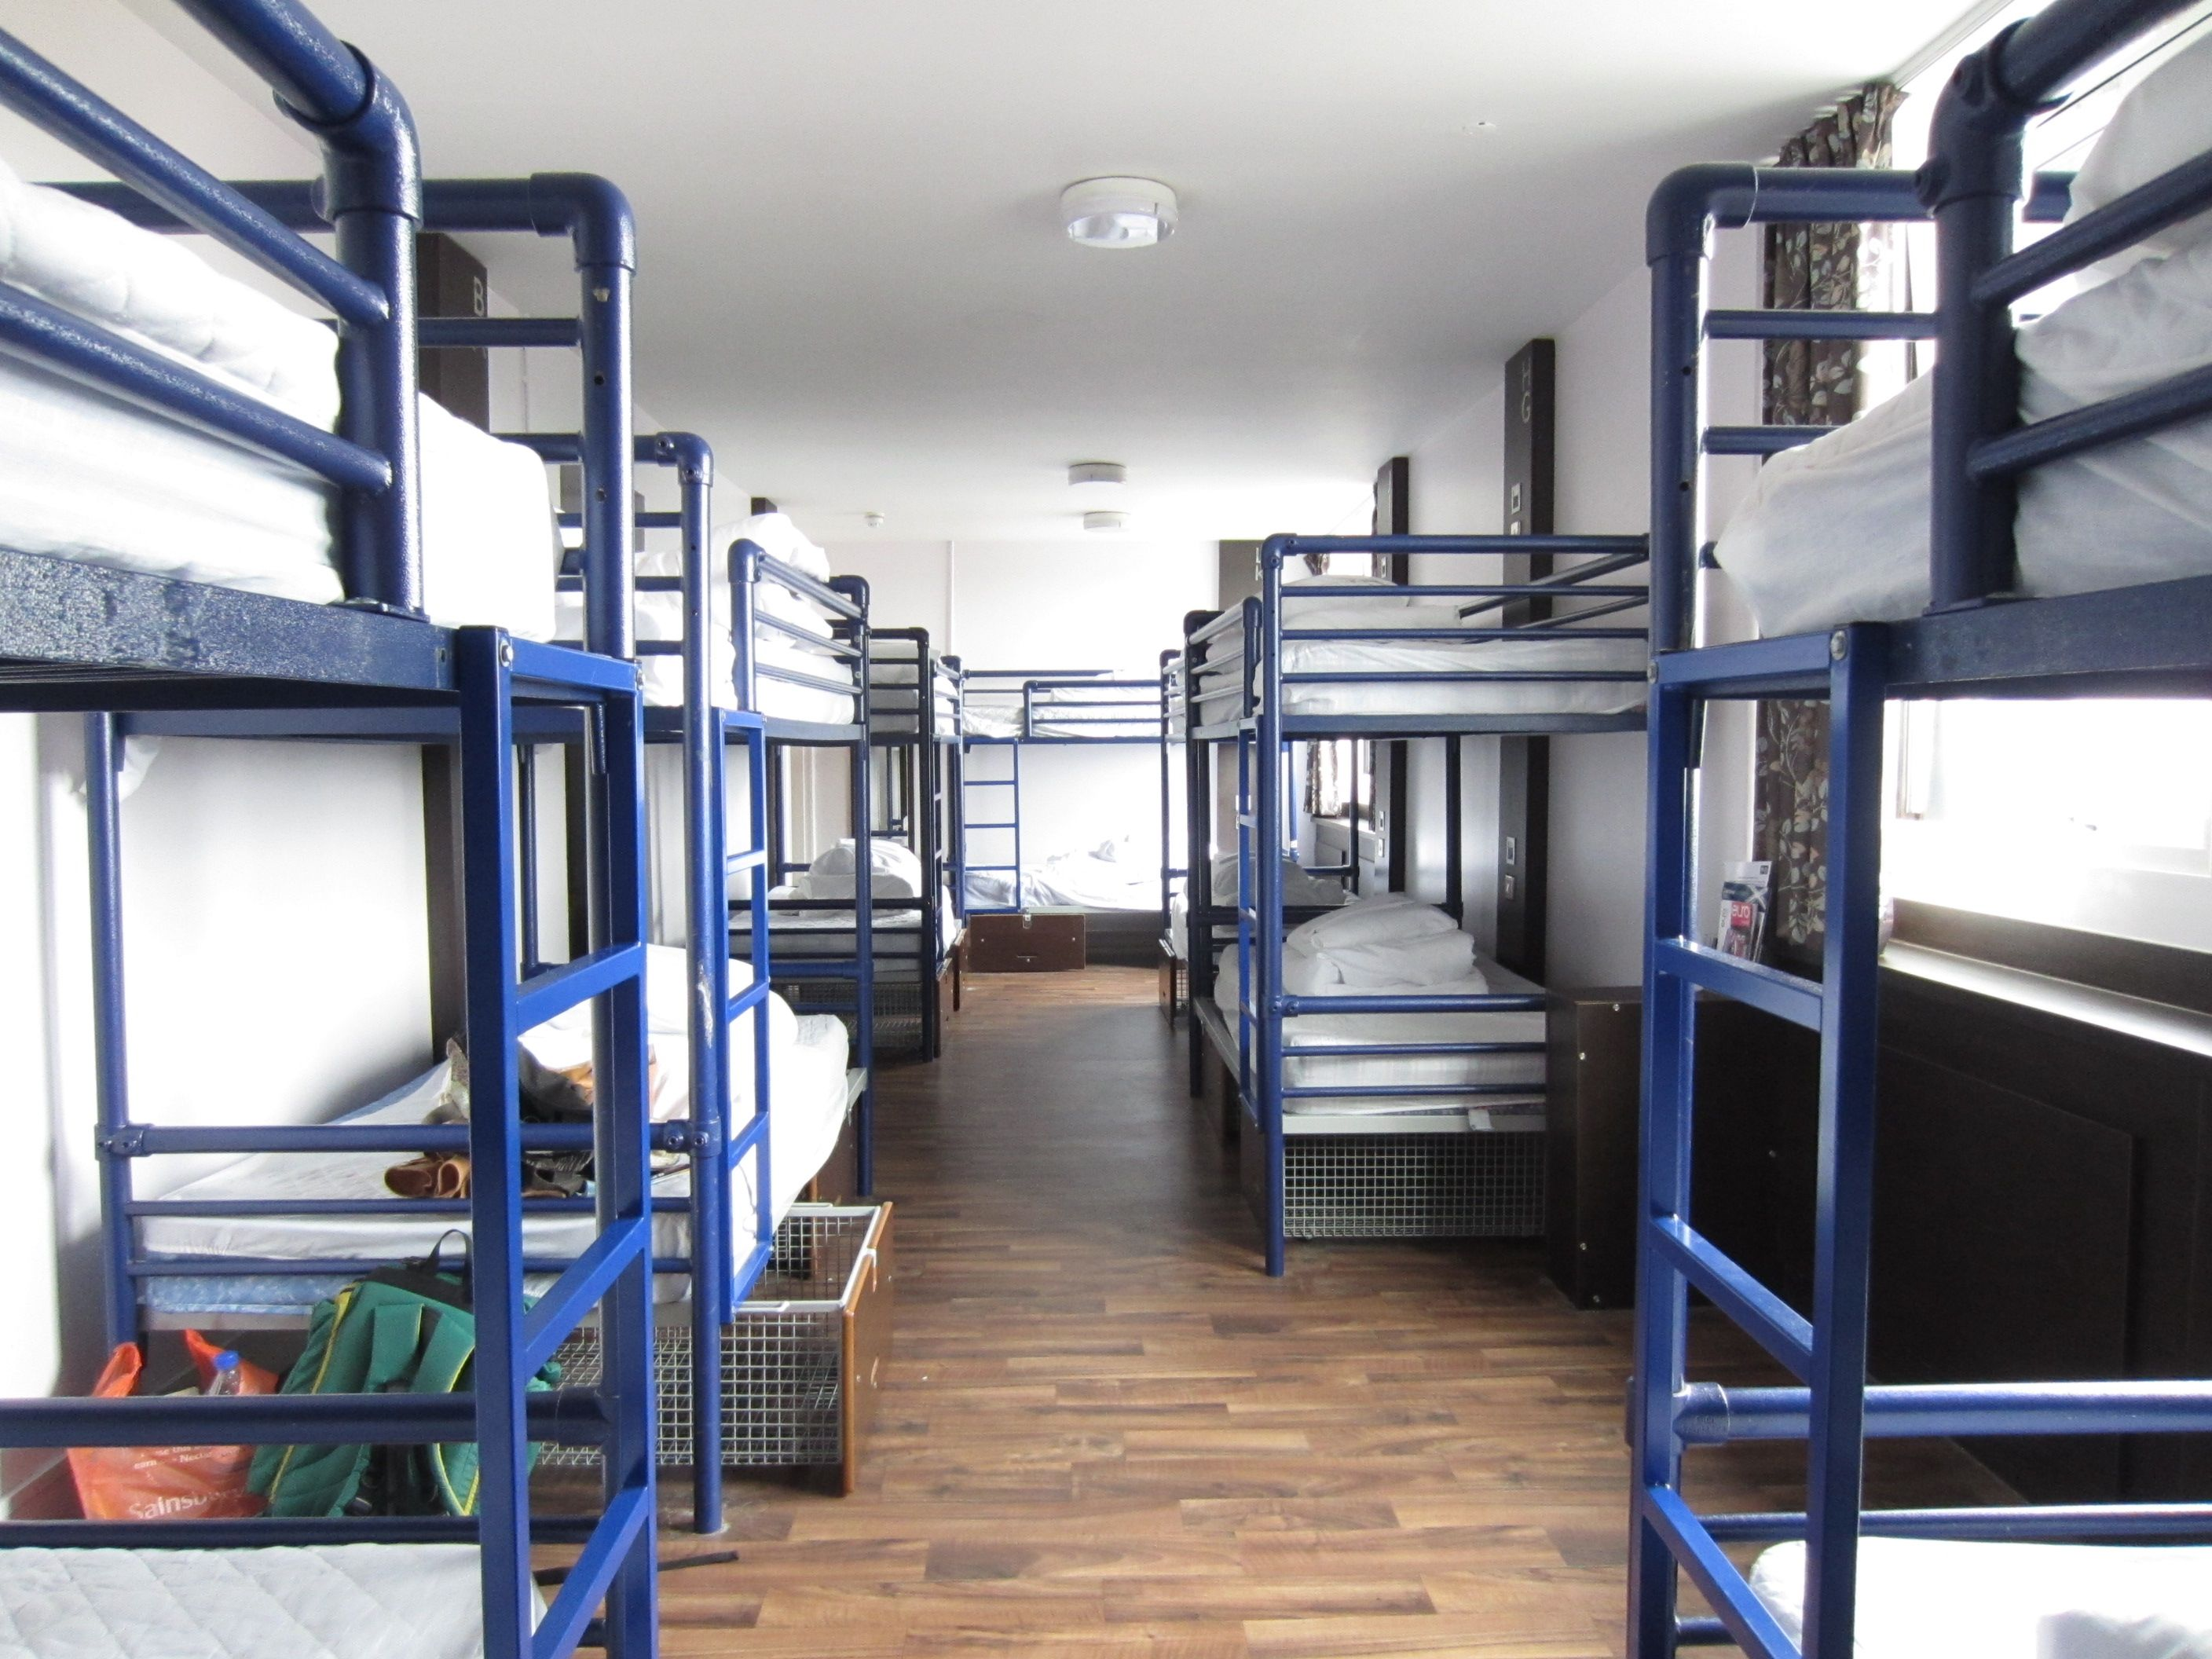 Bed Female Dorm With Lockers Under Beds - Euro